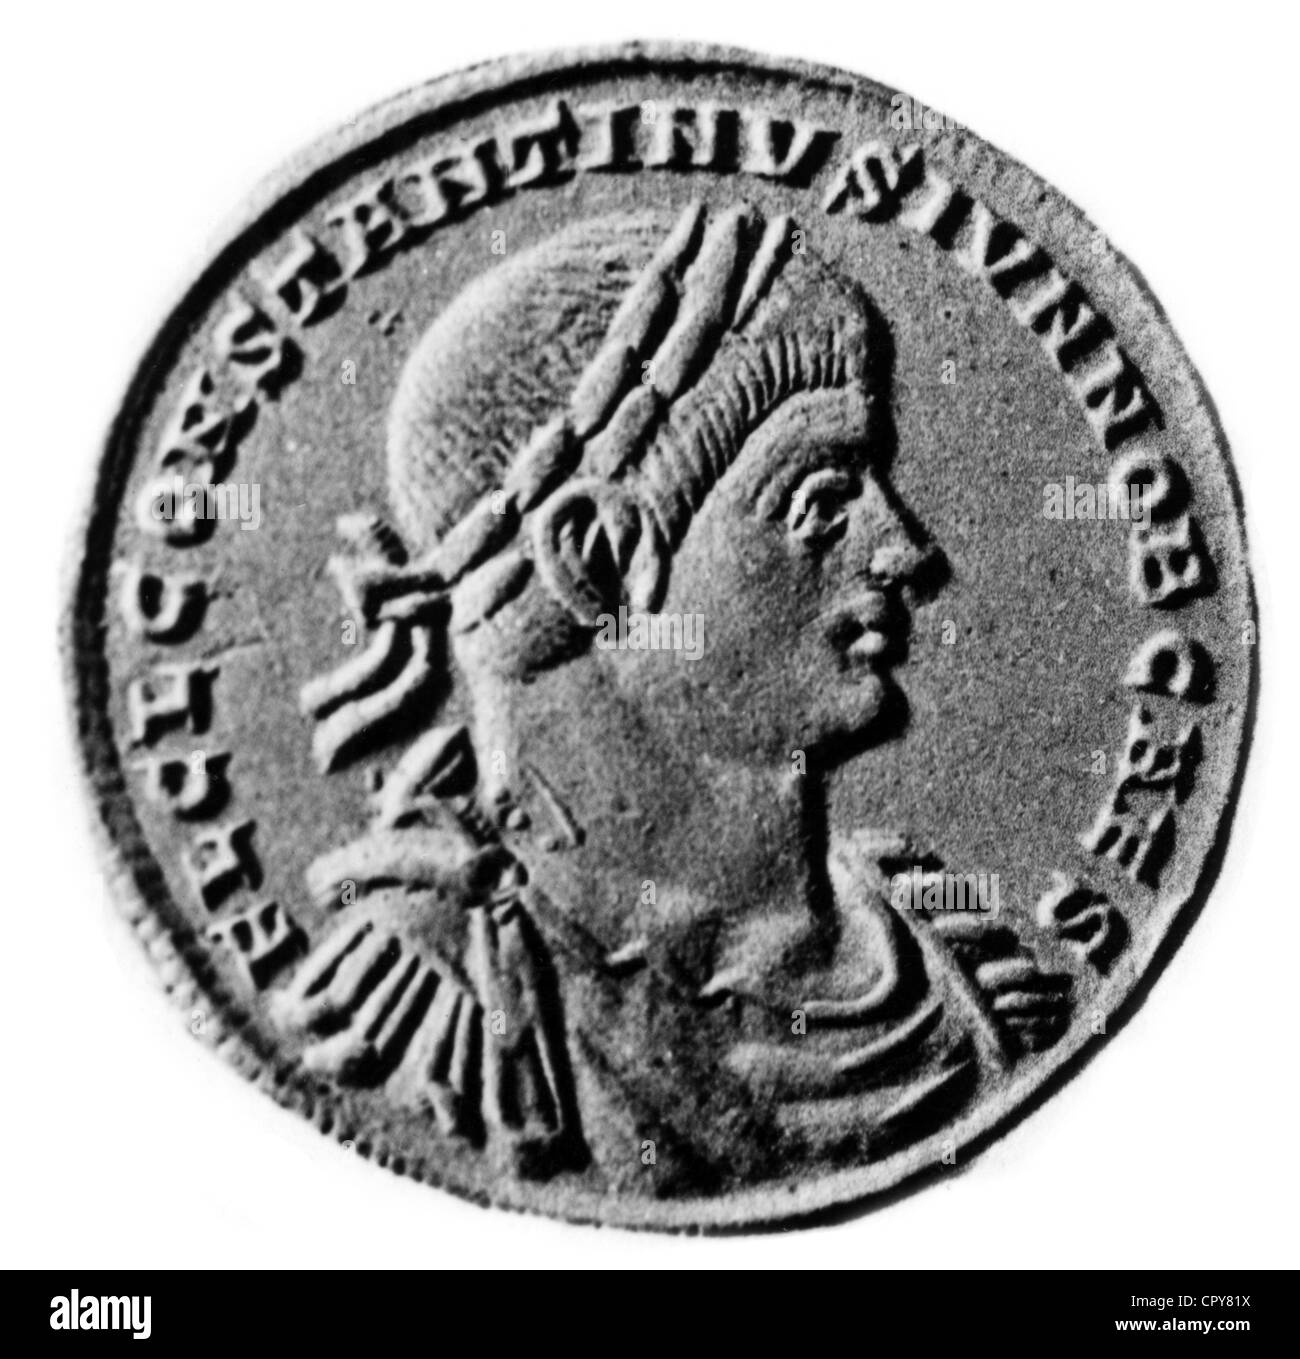 a biography of flavius valerius constantinus a roman emperor Flavius valerius constantinus, who would become roman emperor constantine i, was born on february 27, circa 280 (sources range from 272 to his father, flavius valerius constantius, was an officer in the roman army constantine's mother, helena, was from humble beginnings it is unknown.